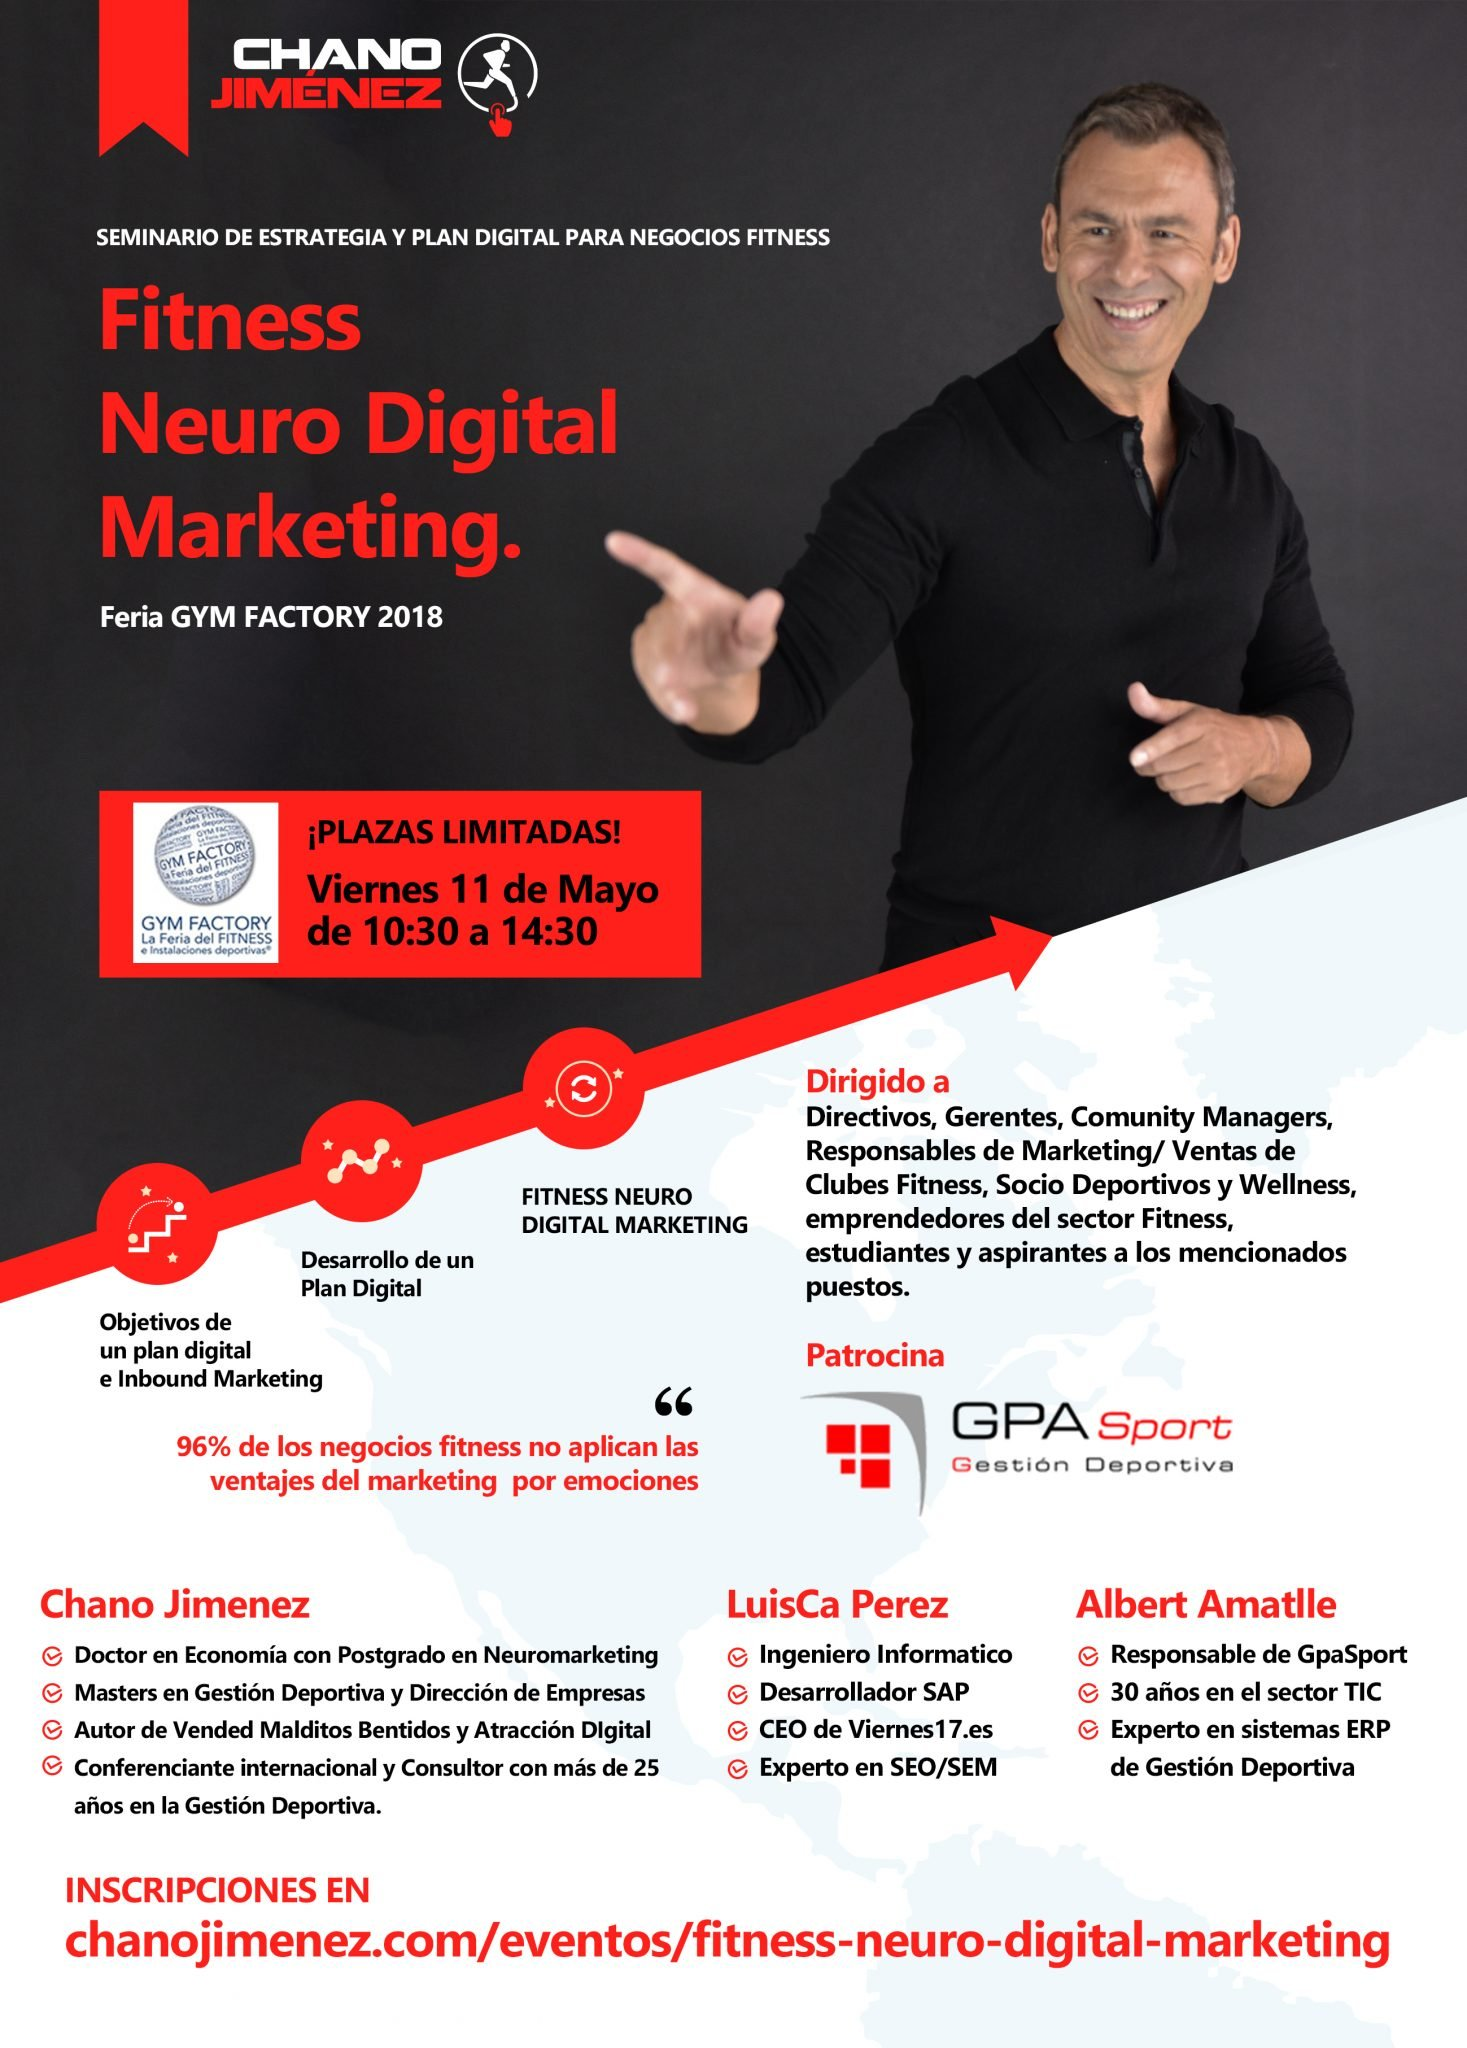 FITNESS NEURO DIGITAL MARKETING - IFEMA 2018 - Consultoria Deportiva Chano Jimenez